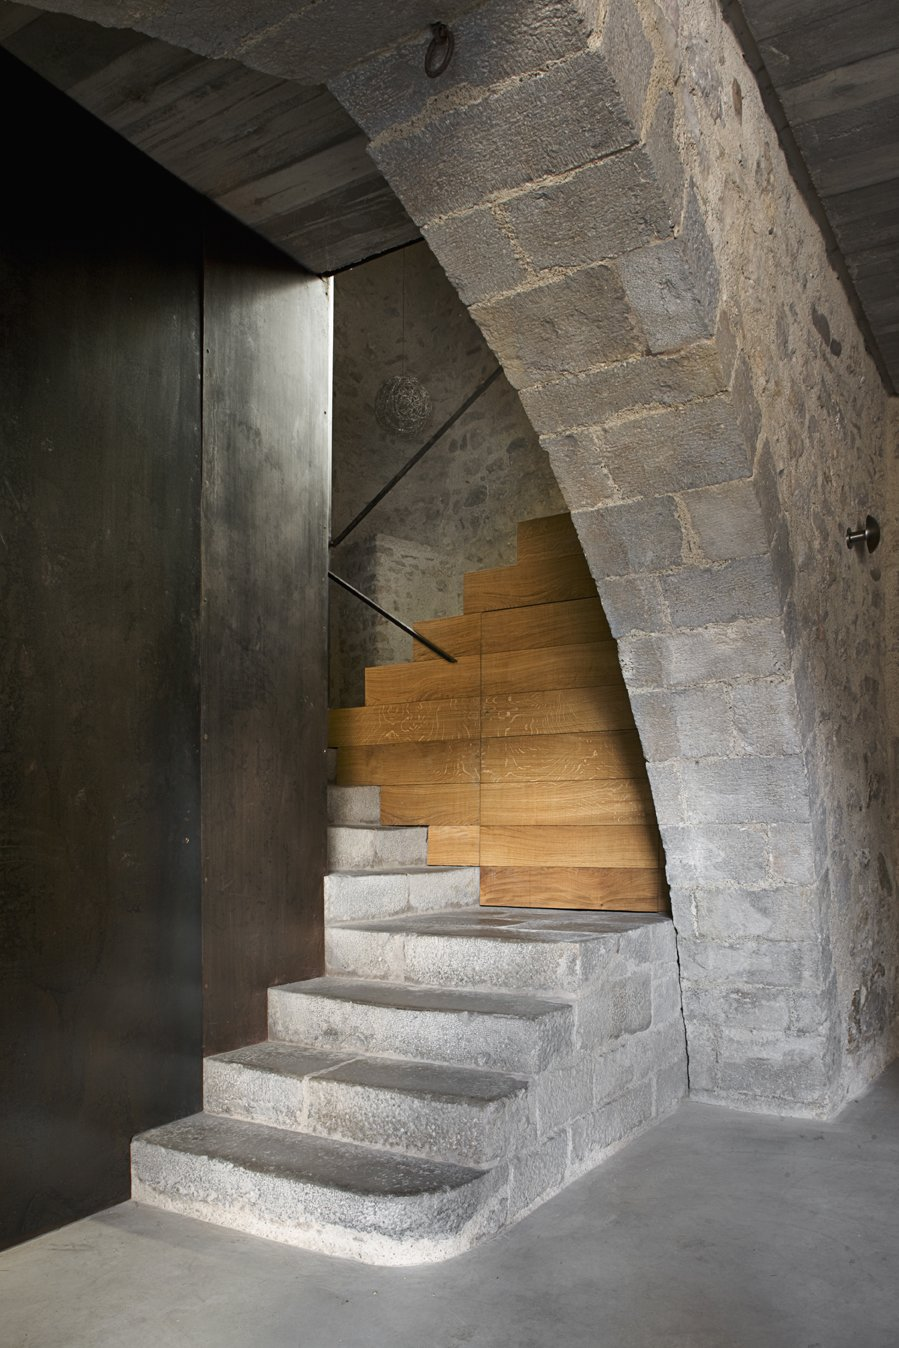 The entranceway with a stairs that leads to the apartment.